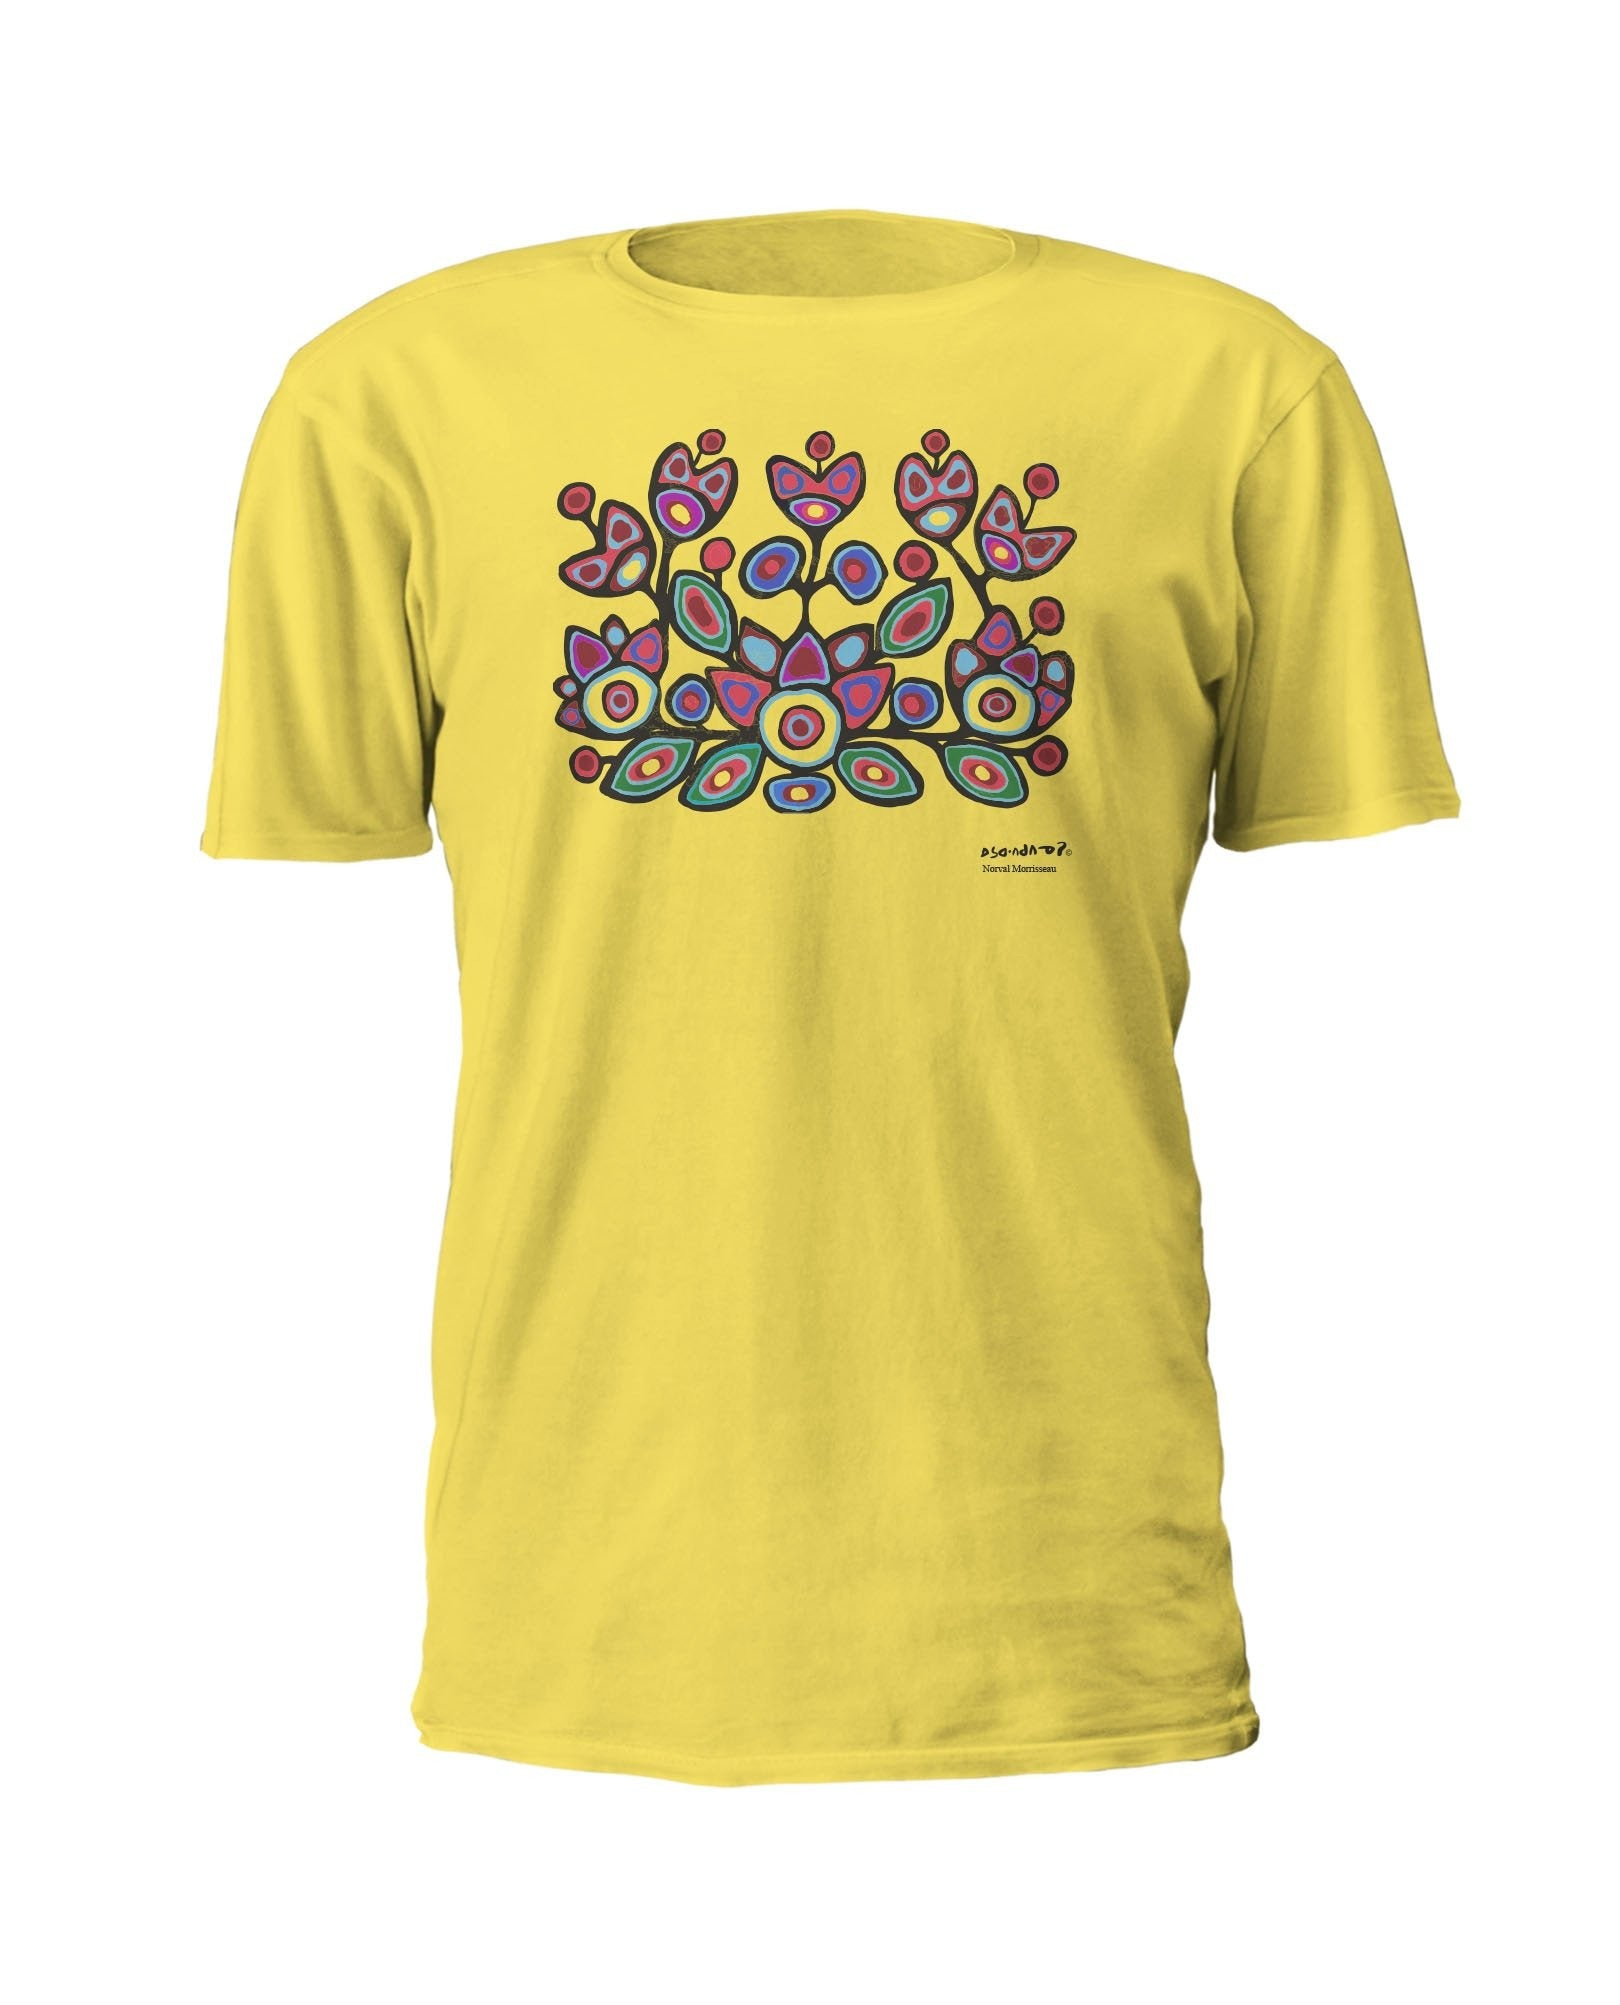 Norval Morrisseau Floral on Yellow Artist T-shirt